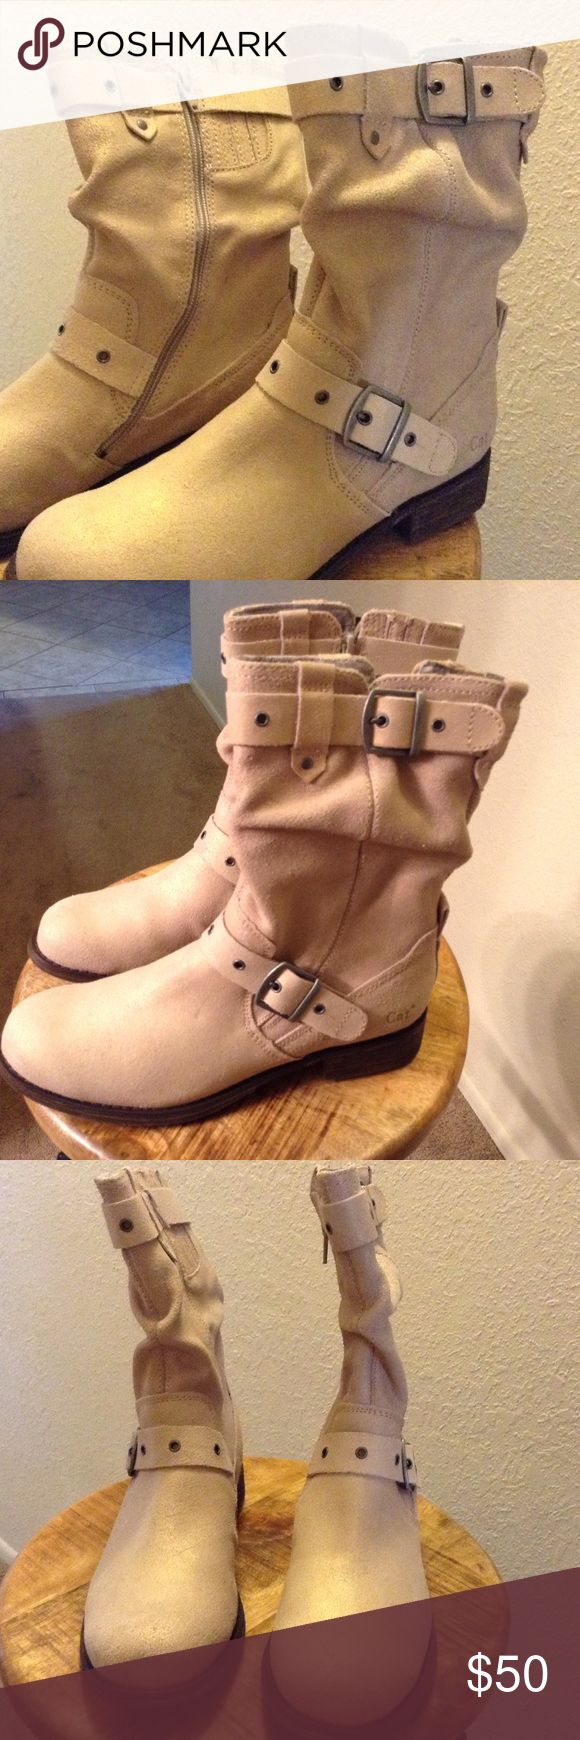 CATerpillar Boots - NWOT NWOT, low heel, super soft inside lining, zip close, suede like material is a dove/cream color with a slightly iridescent gold sheen to it in certain light. Caterpillar Shoes Combat & Moto Boots